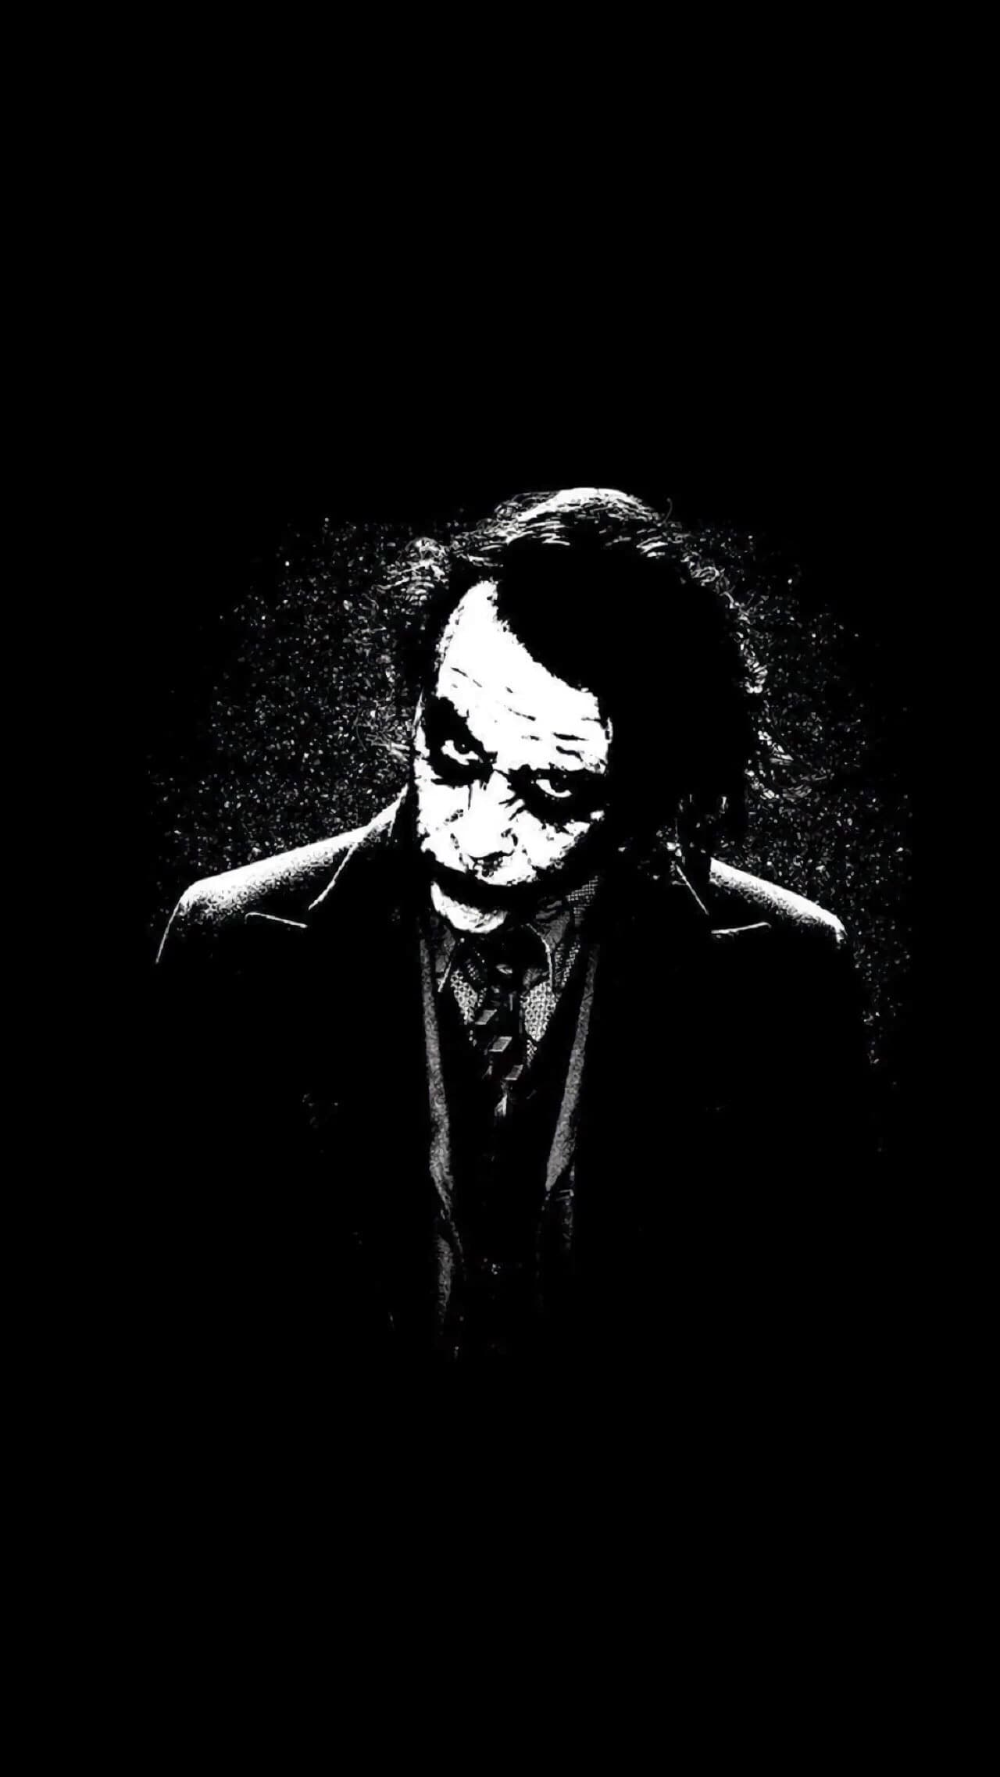 50 خلفية سوداء للايفون Joker Iphone Wallpaper Joker Wallpapers Batman Joker Wallpaper